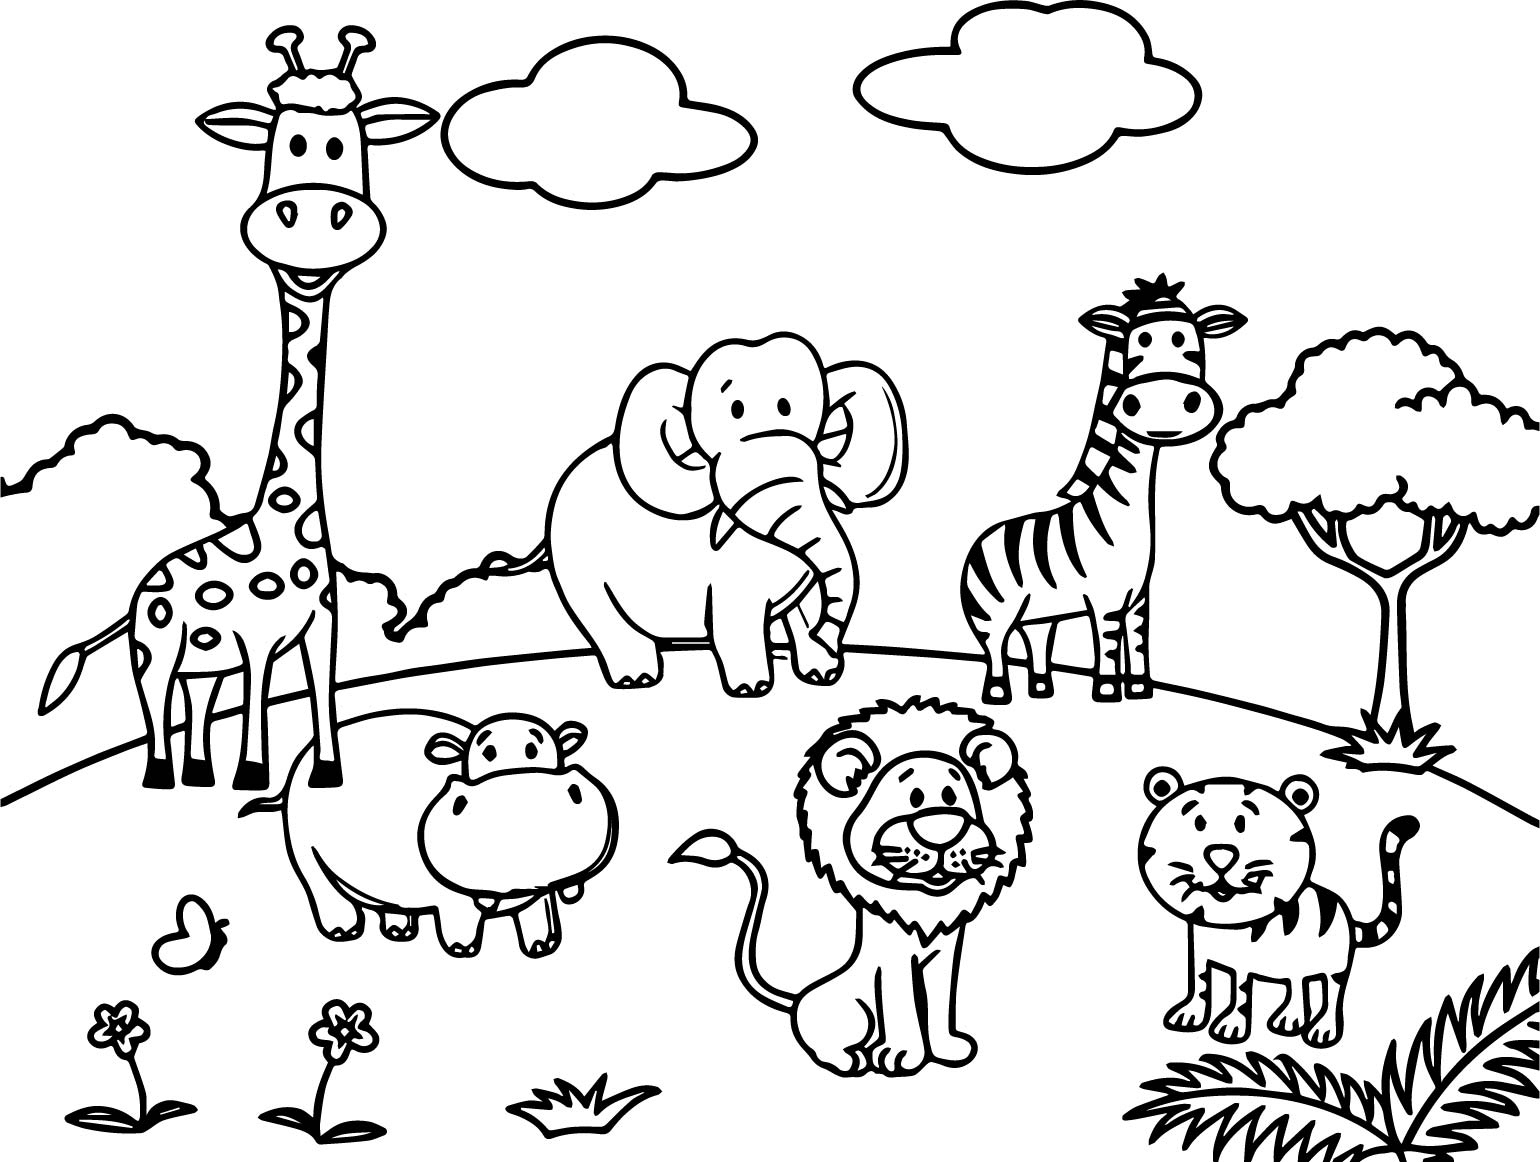 coloring pictures of zoo animals zoo animal coloring pages elegant get this preschool zoo pictures animals coloring of zoo